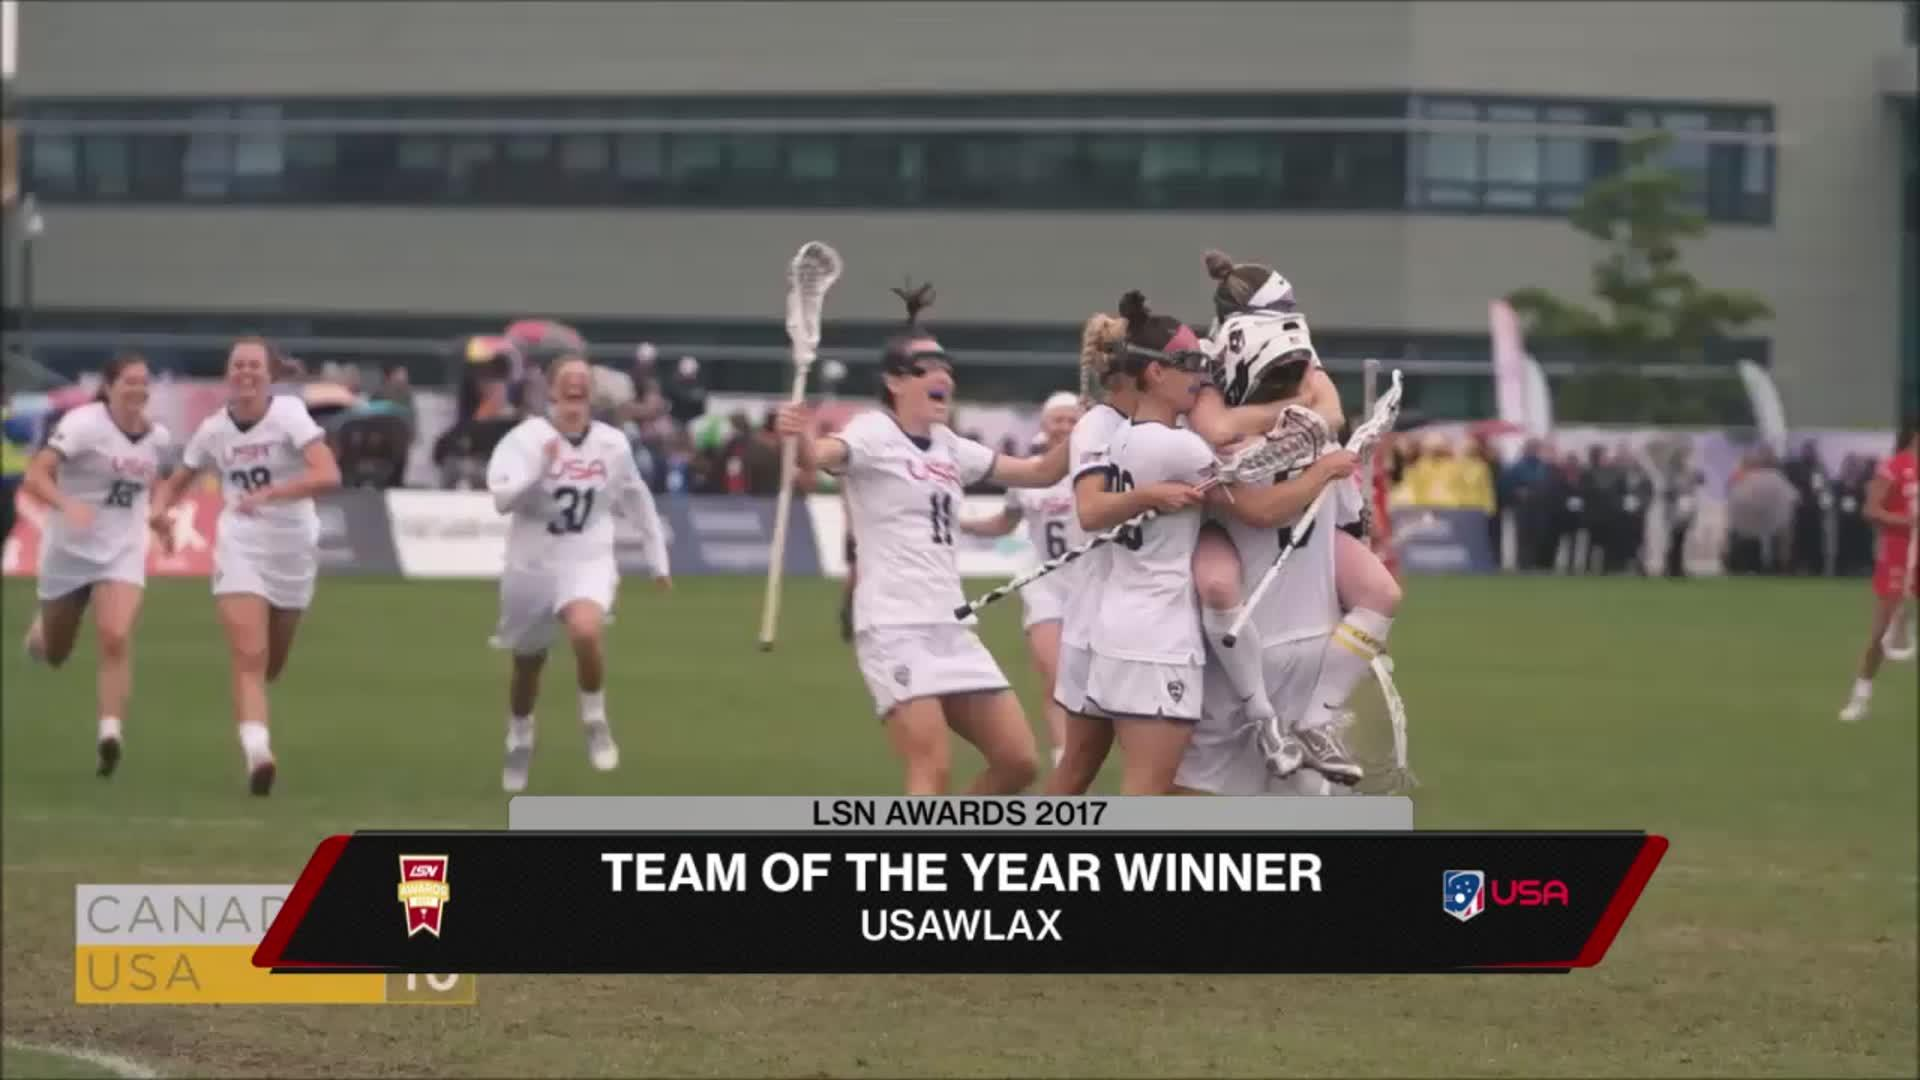 2017 LSN Awards: Team of the Year